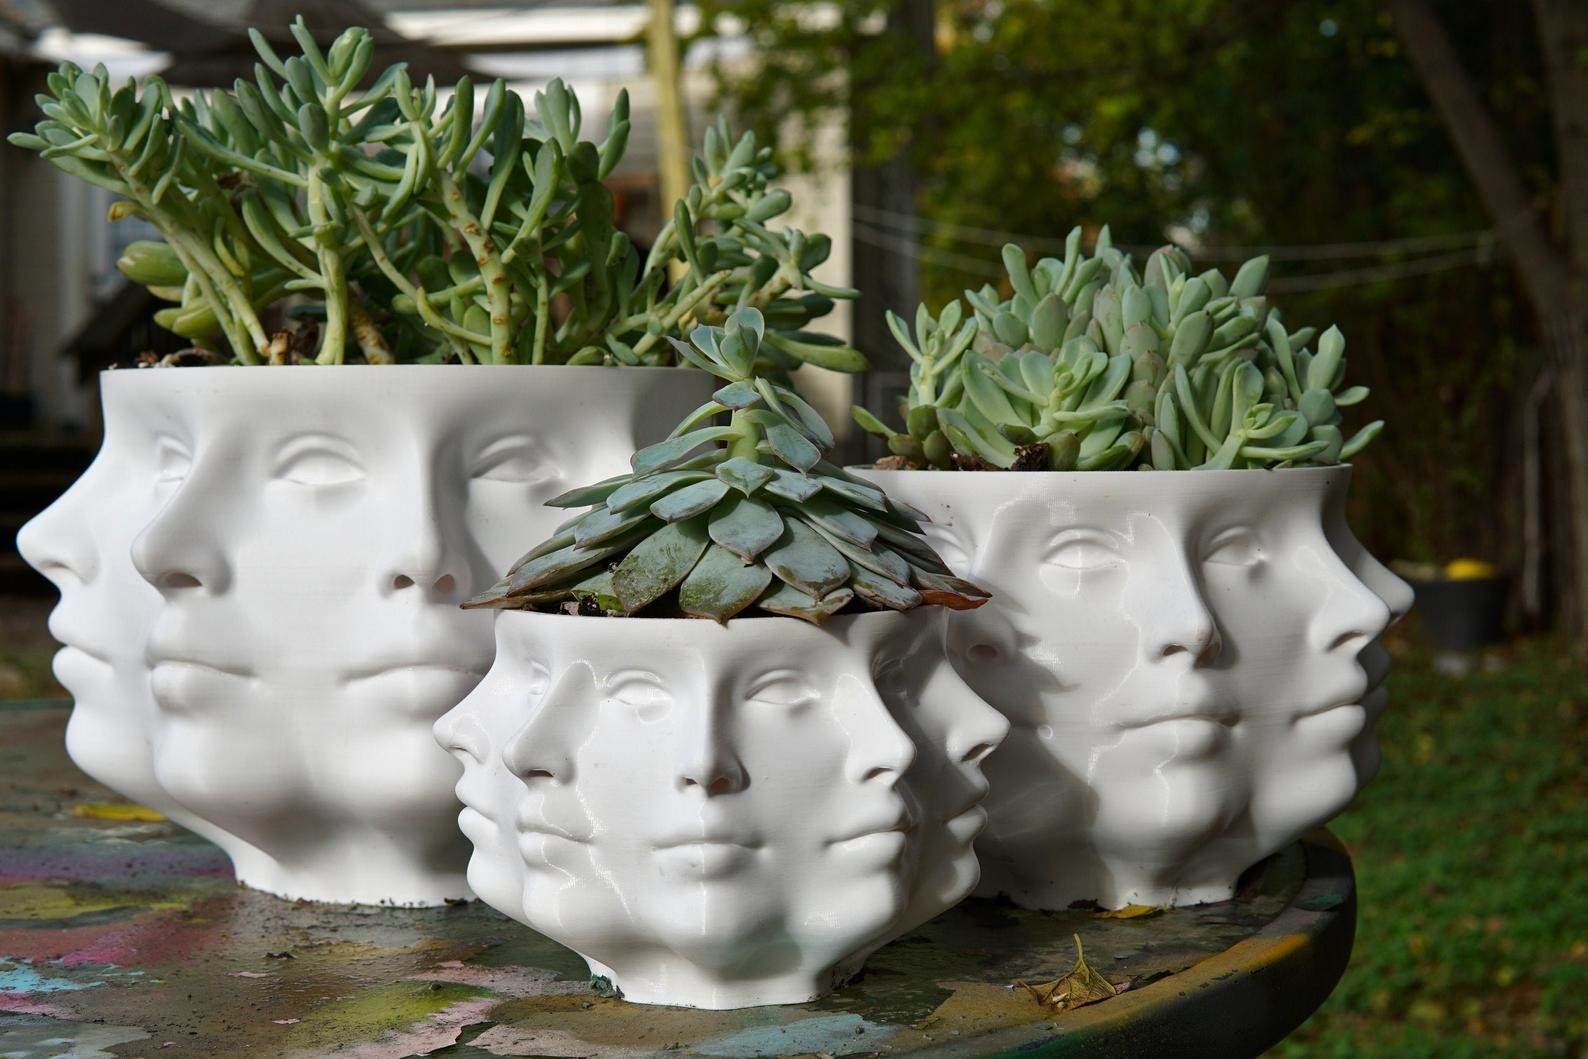 Three different white planters featuring the repeated pattern of a human face